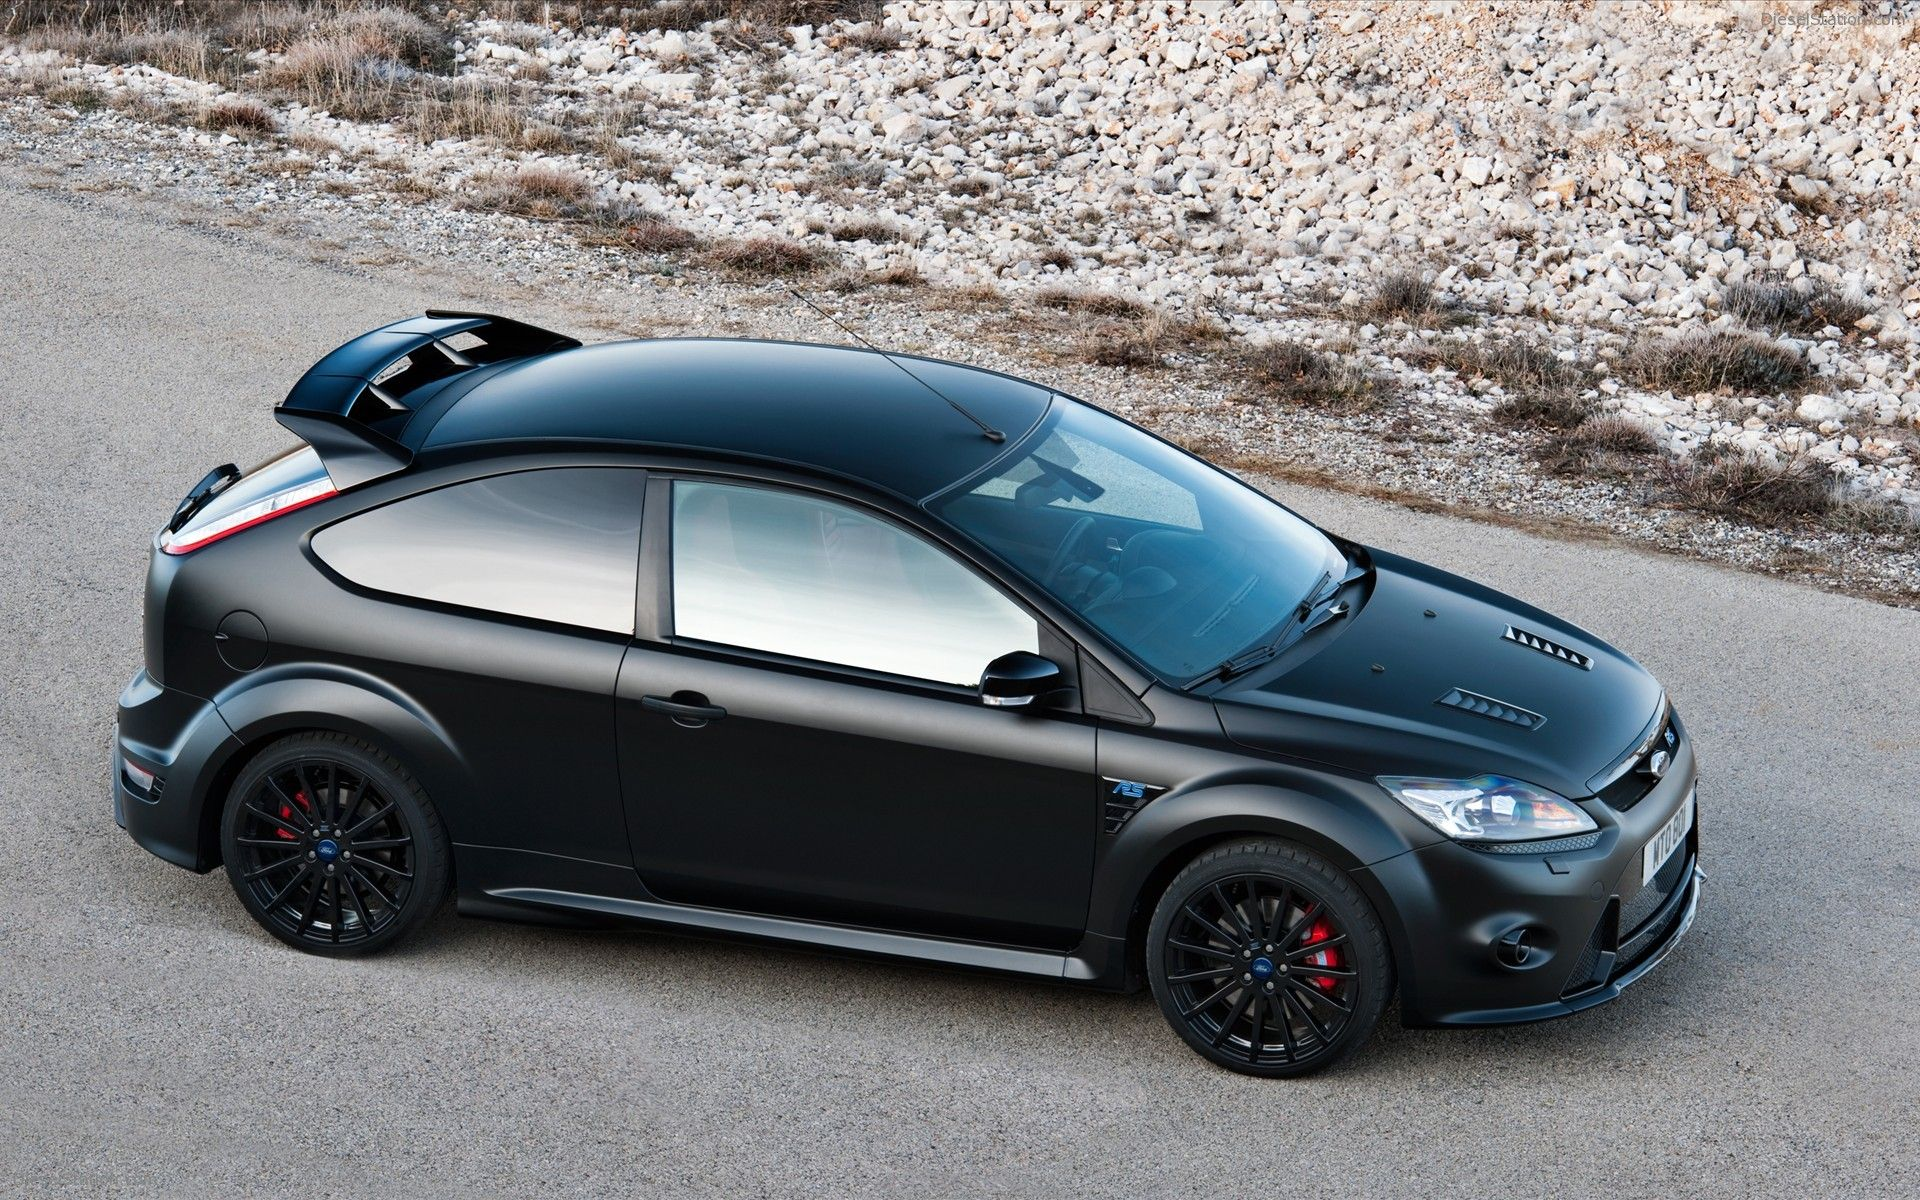 17++ Ford focus rs 500 2012 ideas in 2021